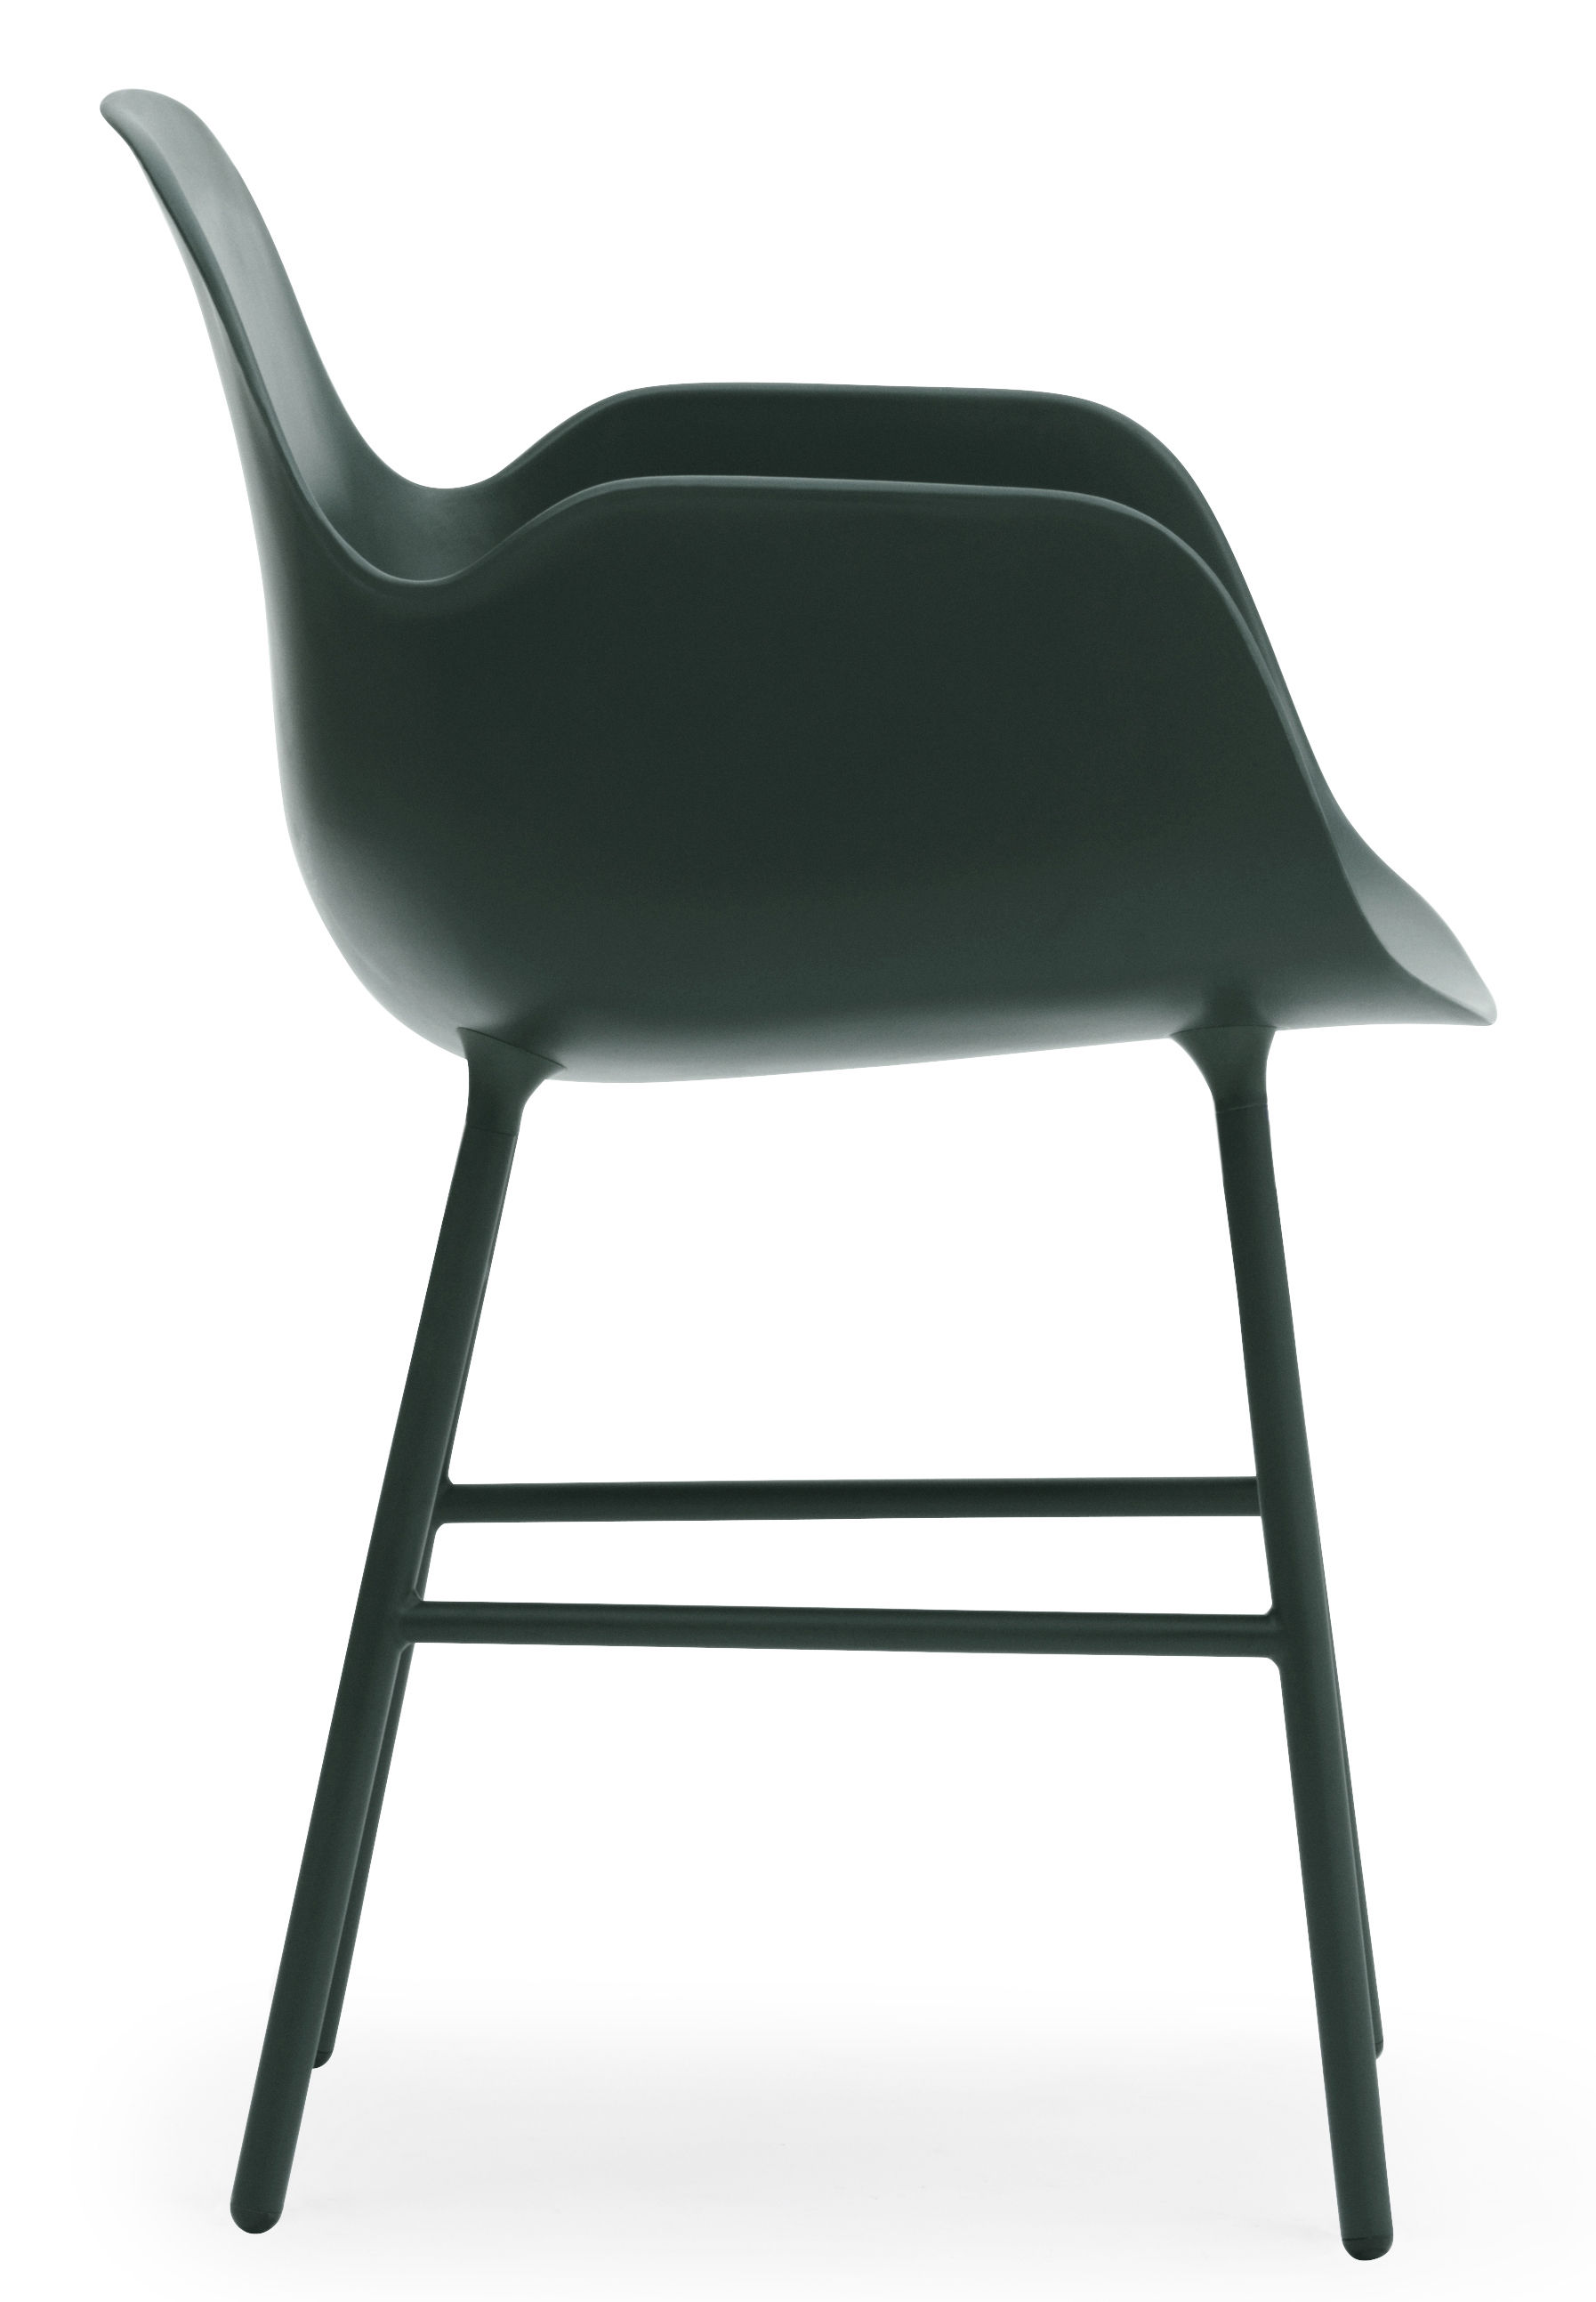 fauteuil form pied m tal vert normann copenhagen. Black Bedroom Furniture Sets. Home Design Ideas